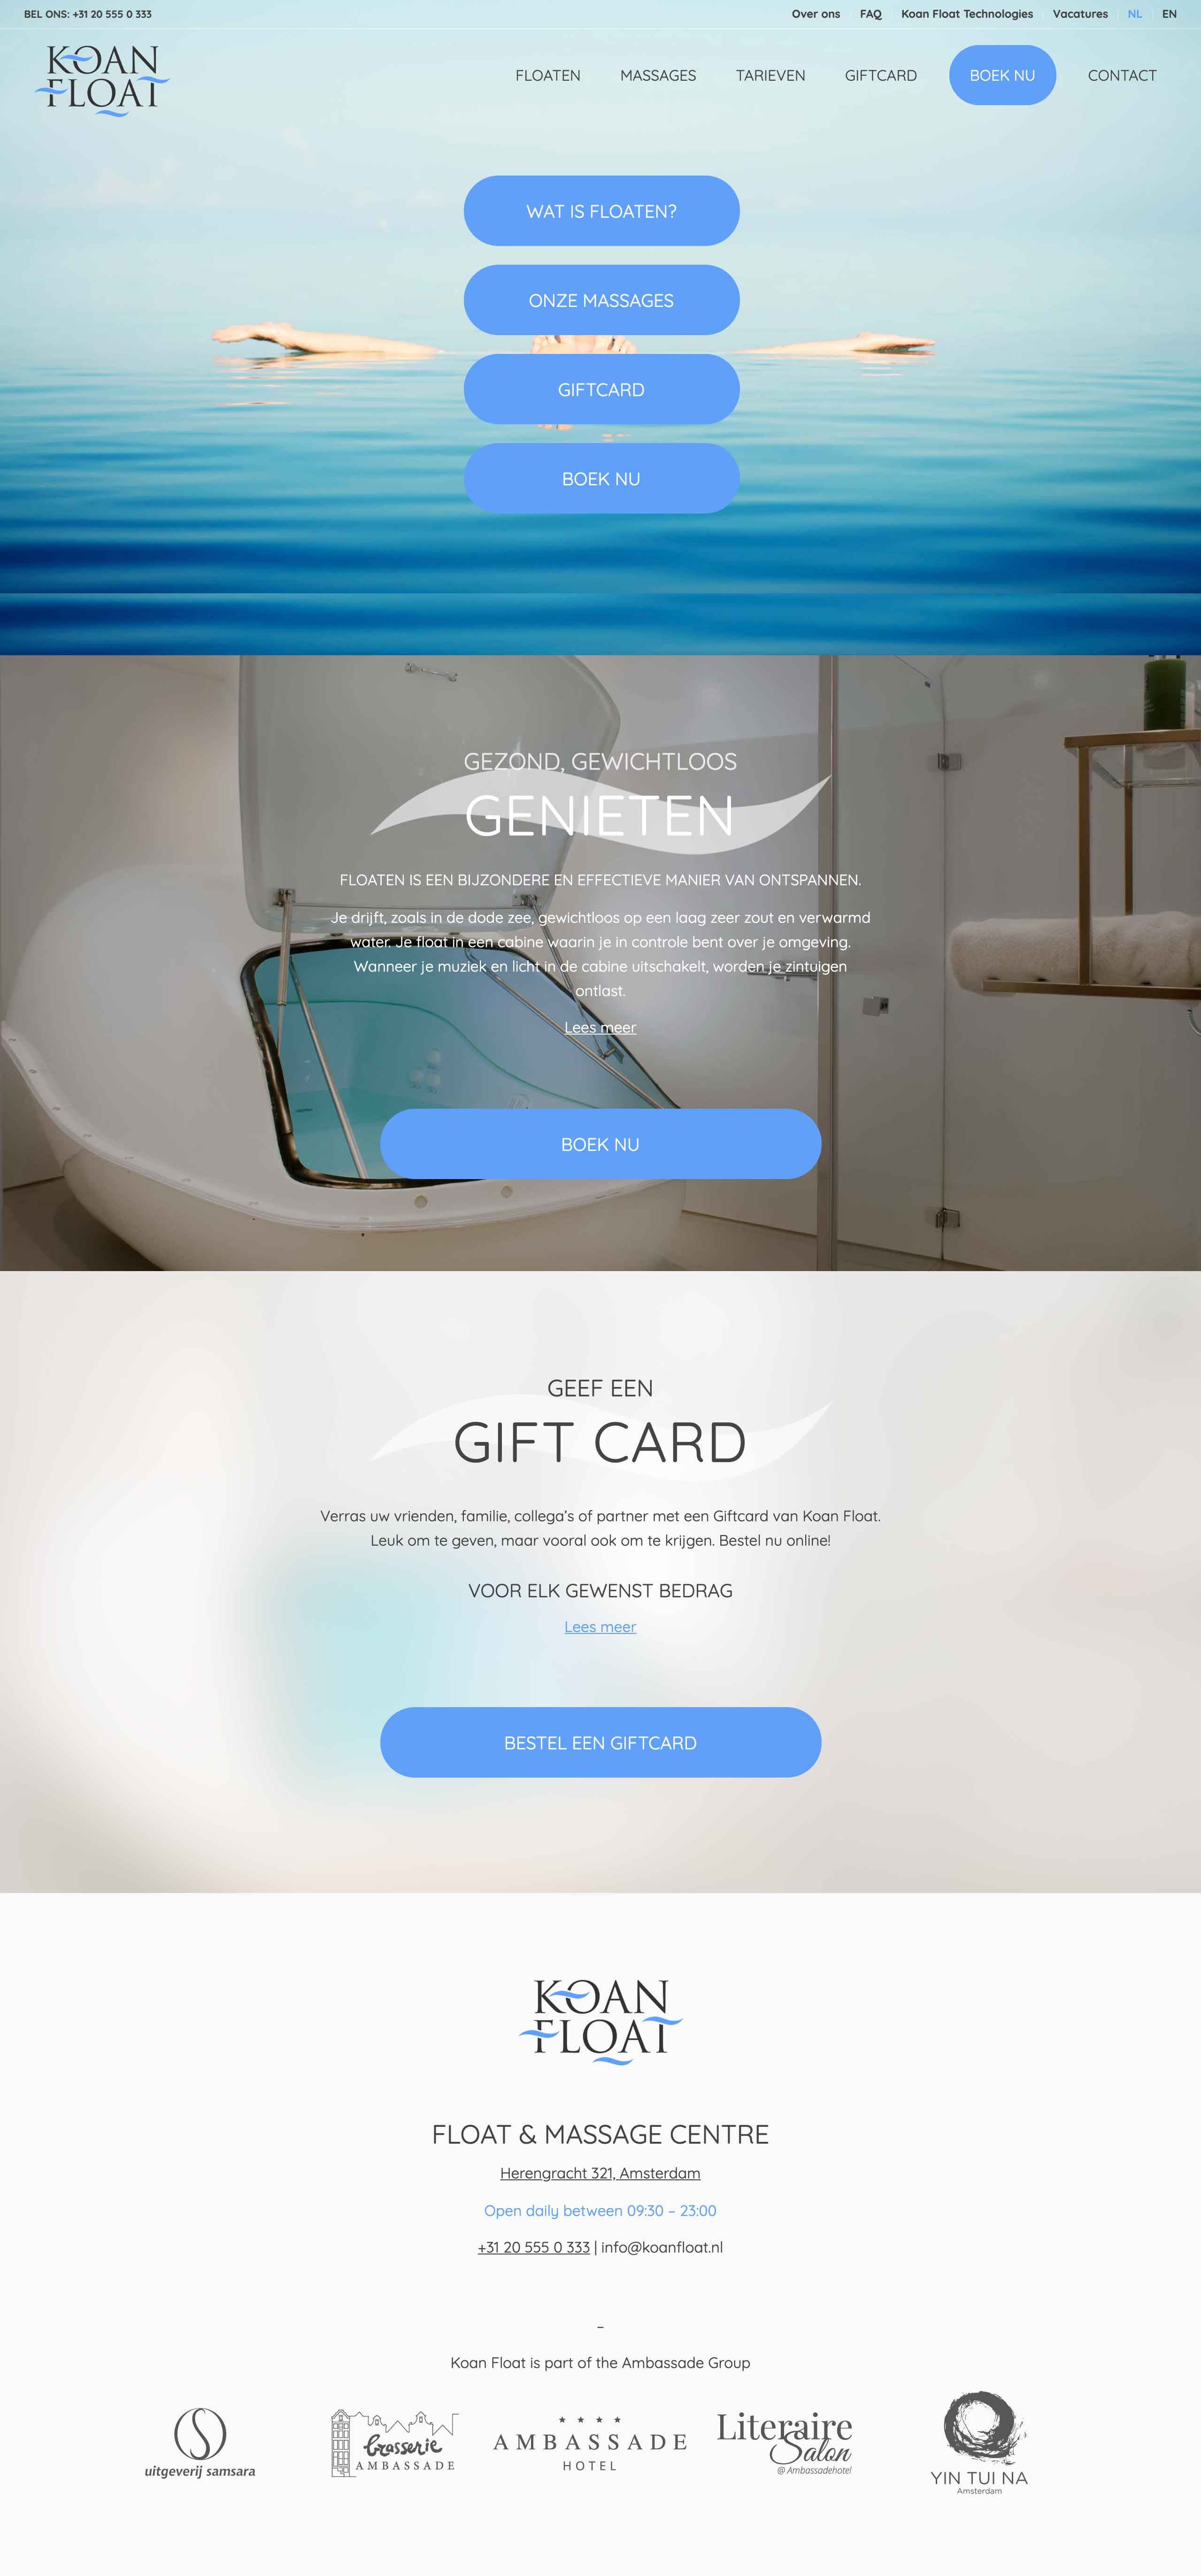 Koan Float website mockup by Gent Iyus